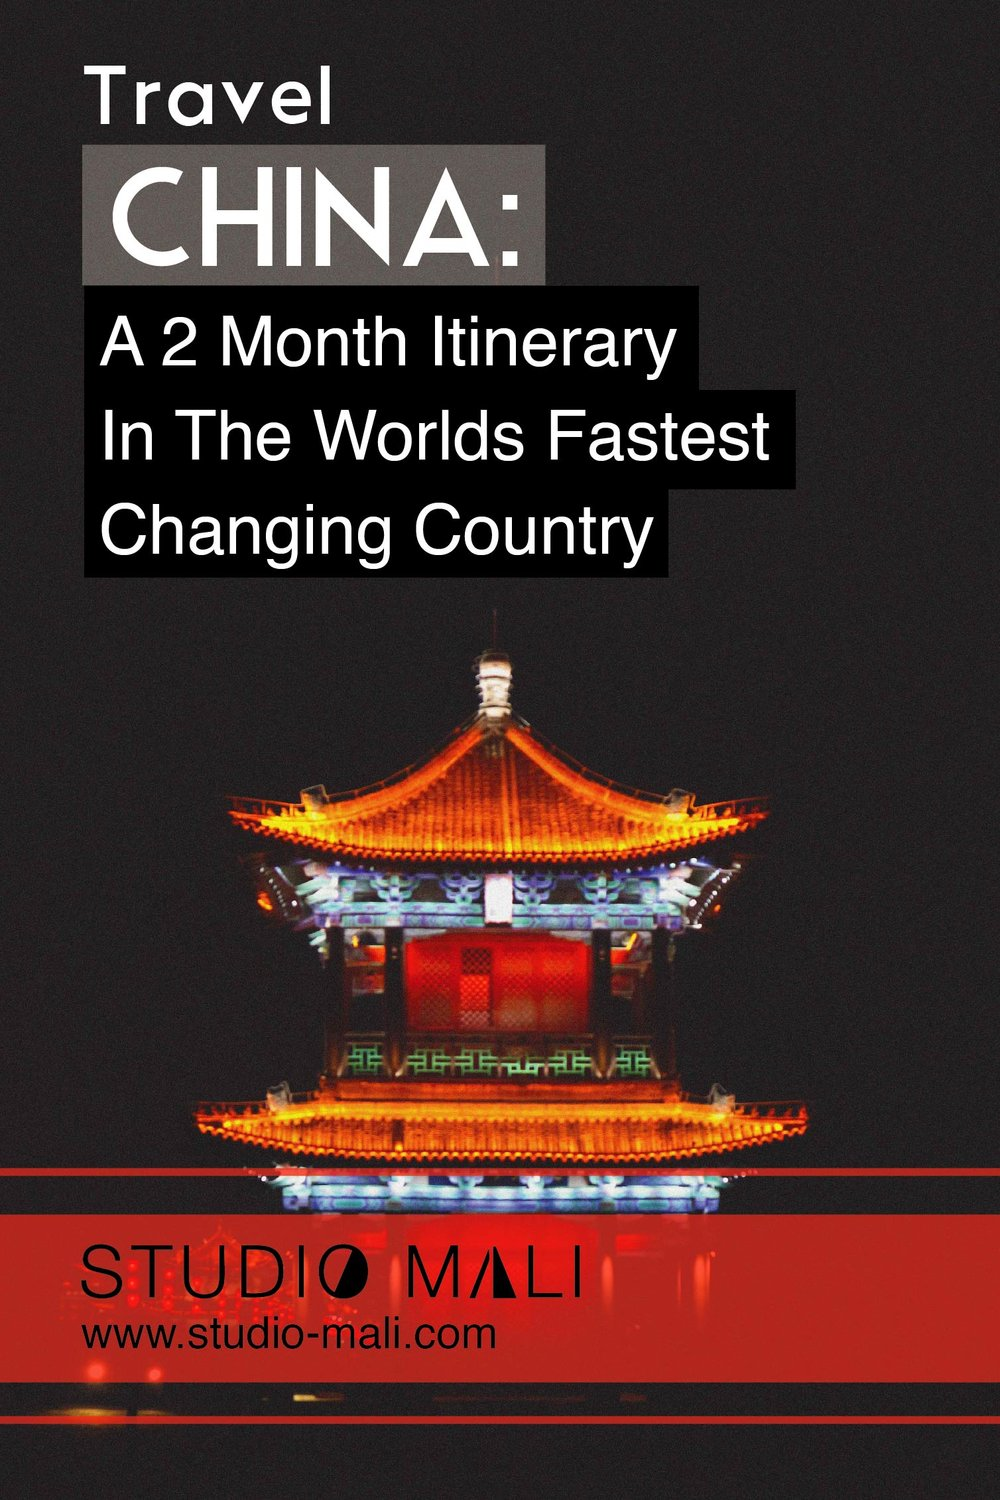 China - A 2 Month Itinerary In The Worlds Fastest Changing Country, By Studio Mali.jpg